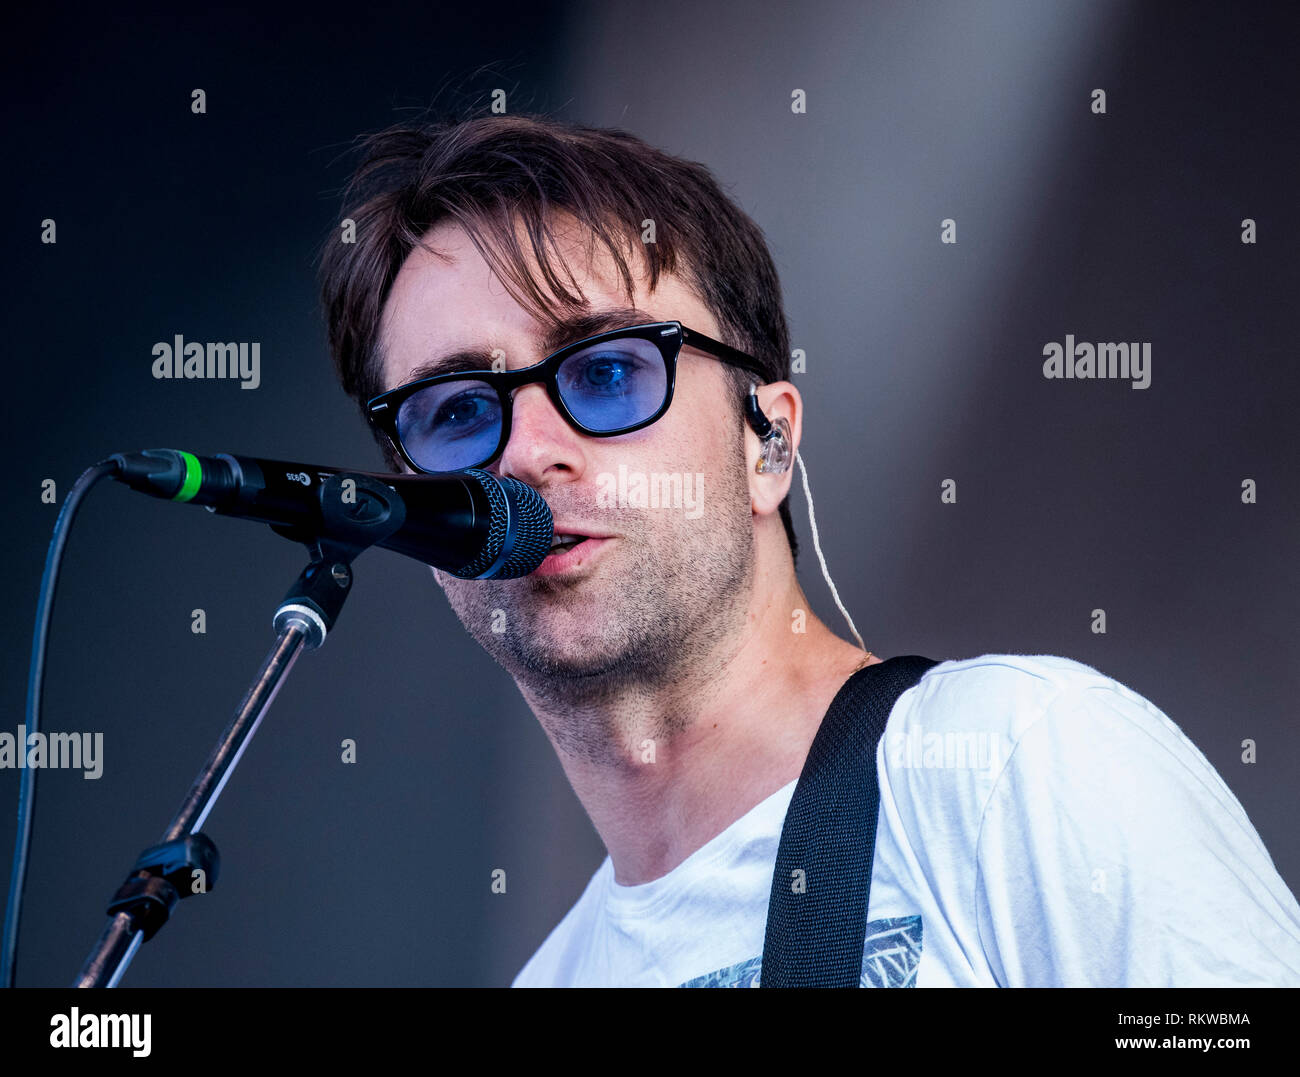 Justin Young from The Vaccines performing live at Latitude Festival 2018. - Stock Image